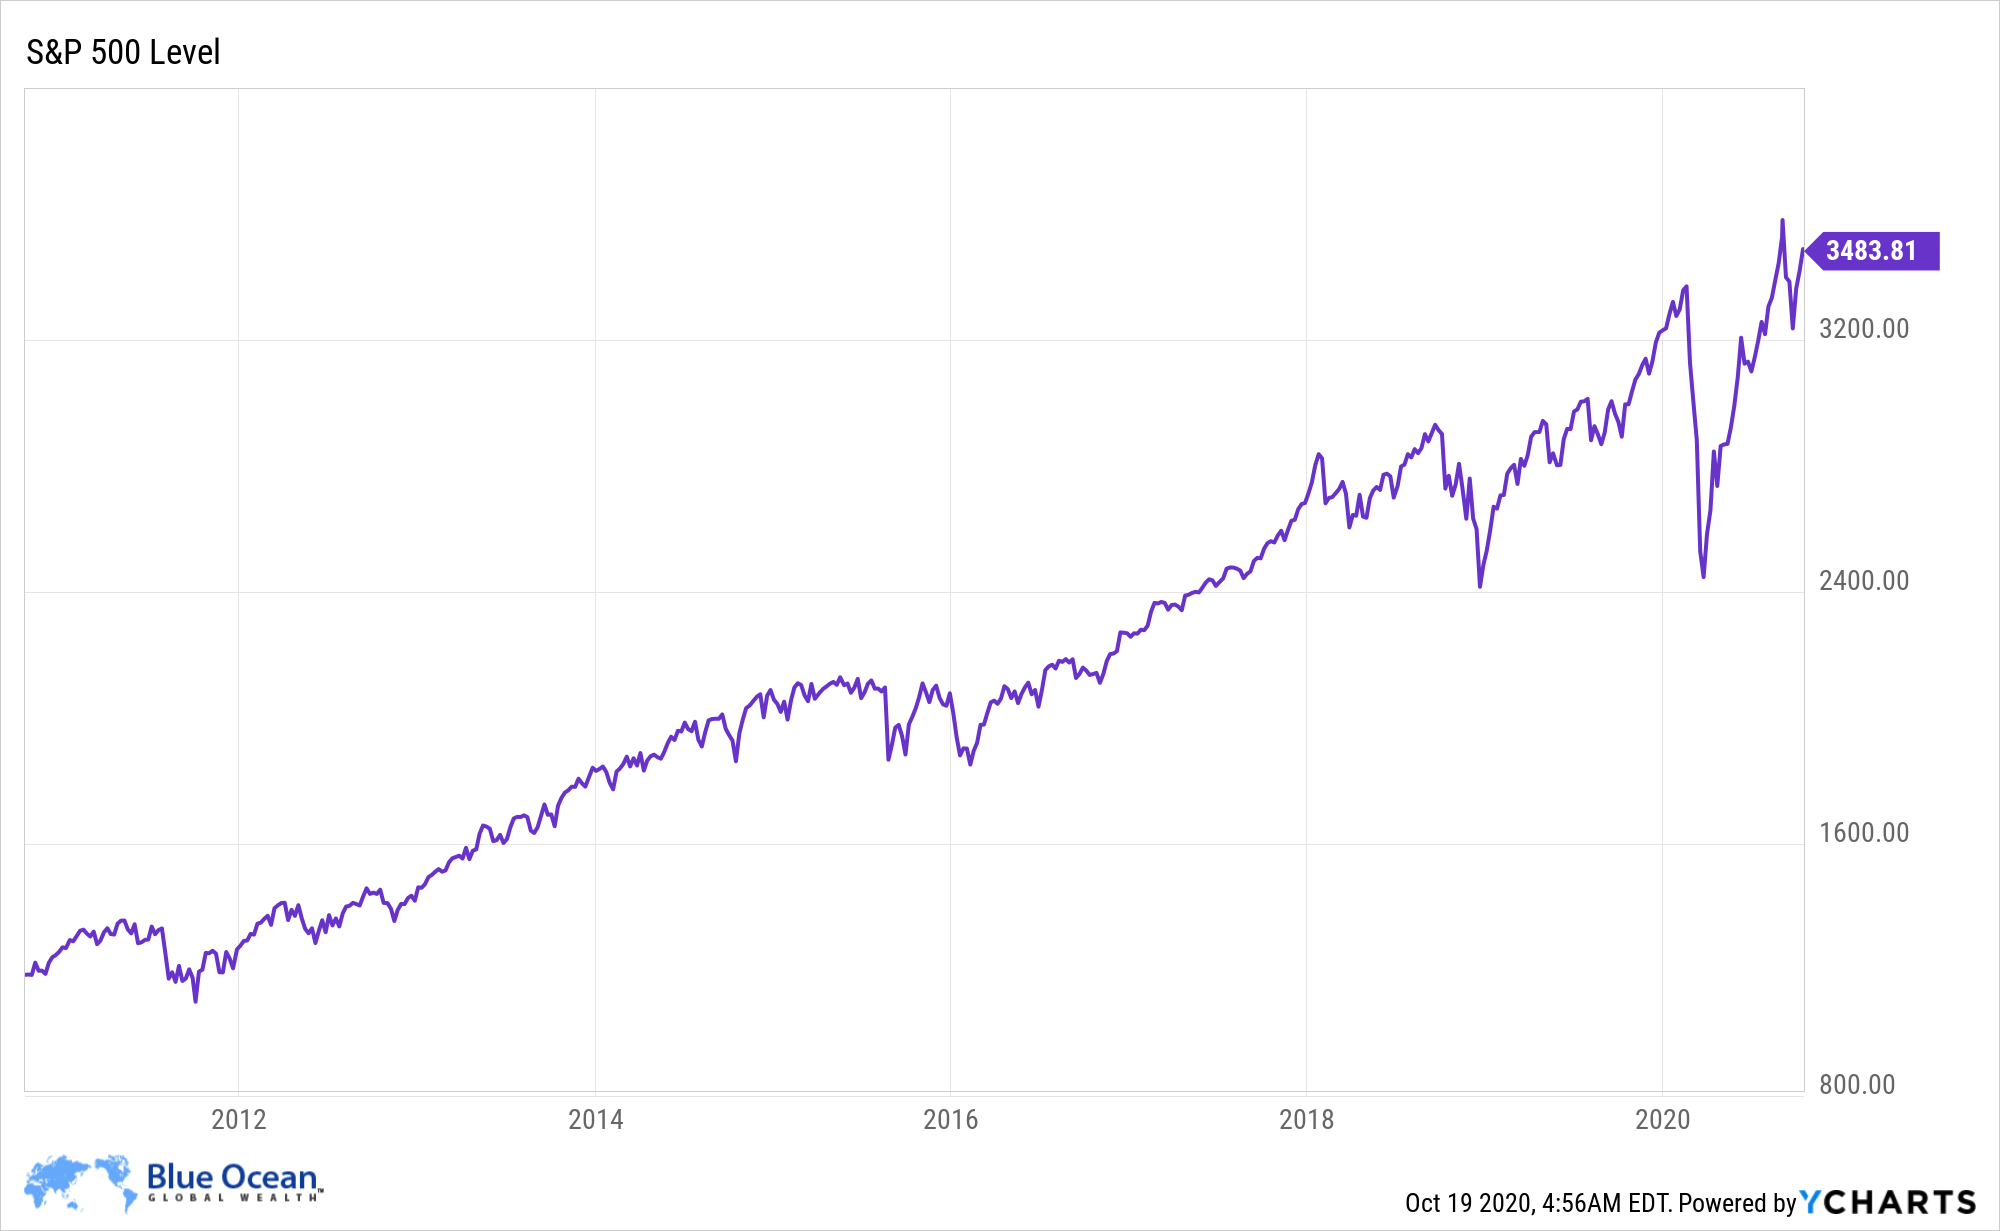 Index Funds Are Great, But Active Investing Has Its Place